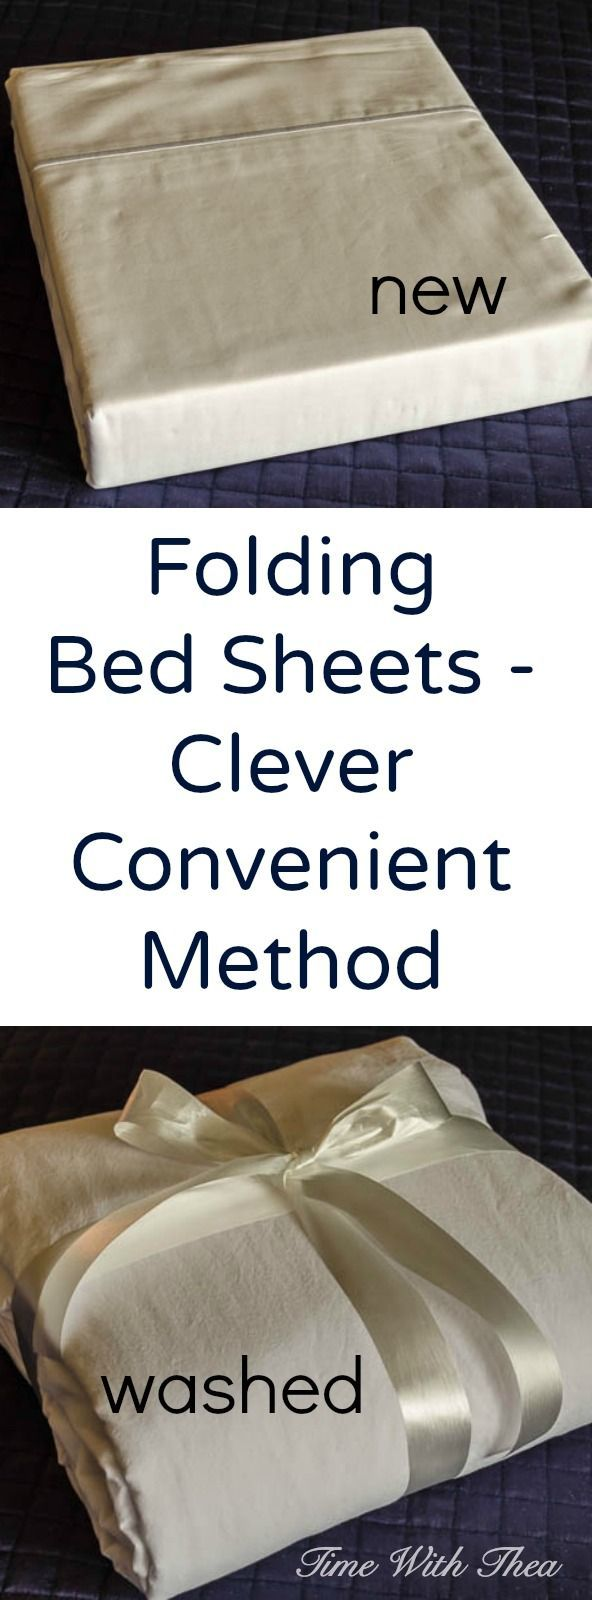 Folding sheets can actually be made easy with this convenient option! It will help with organization and look nice too!